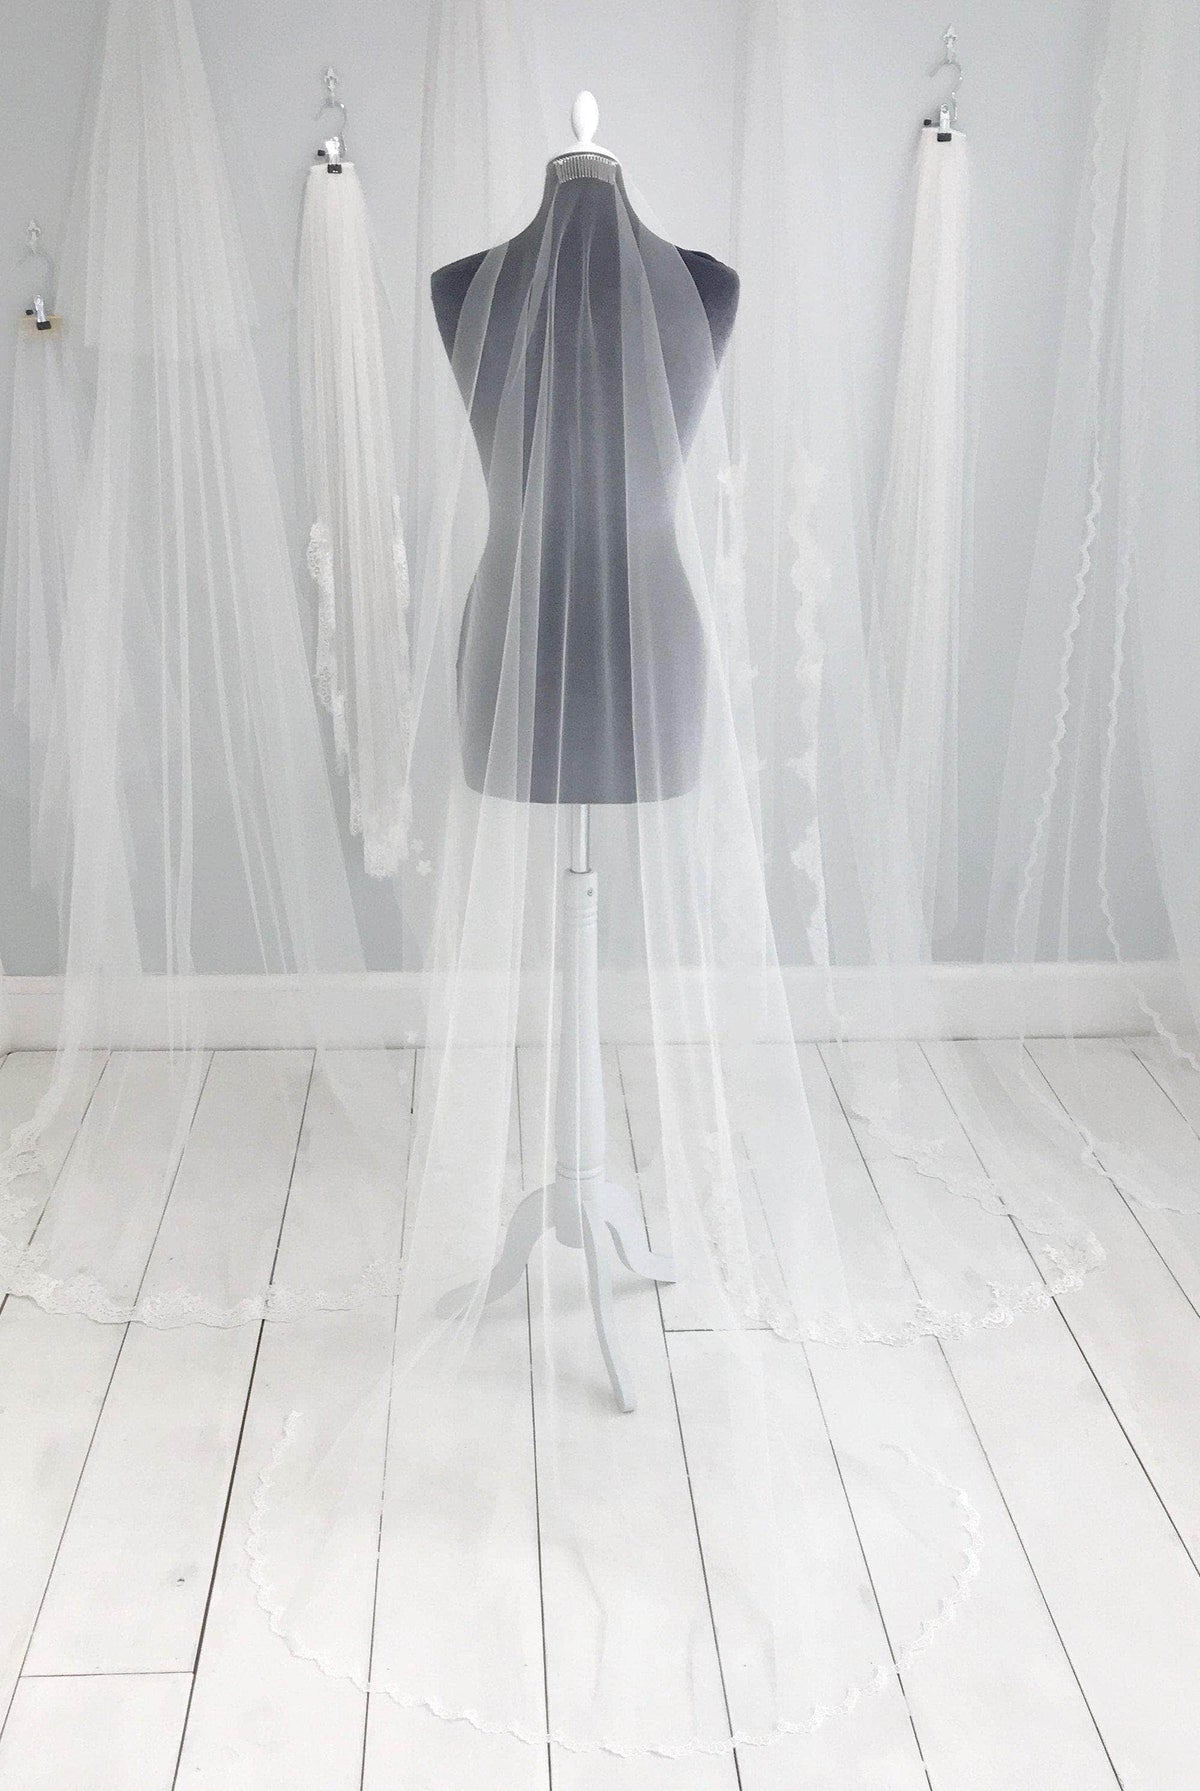 Wedding Veil Semi lace edged barely there wedding veil - 'Adah'